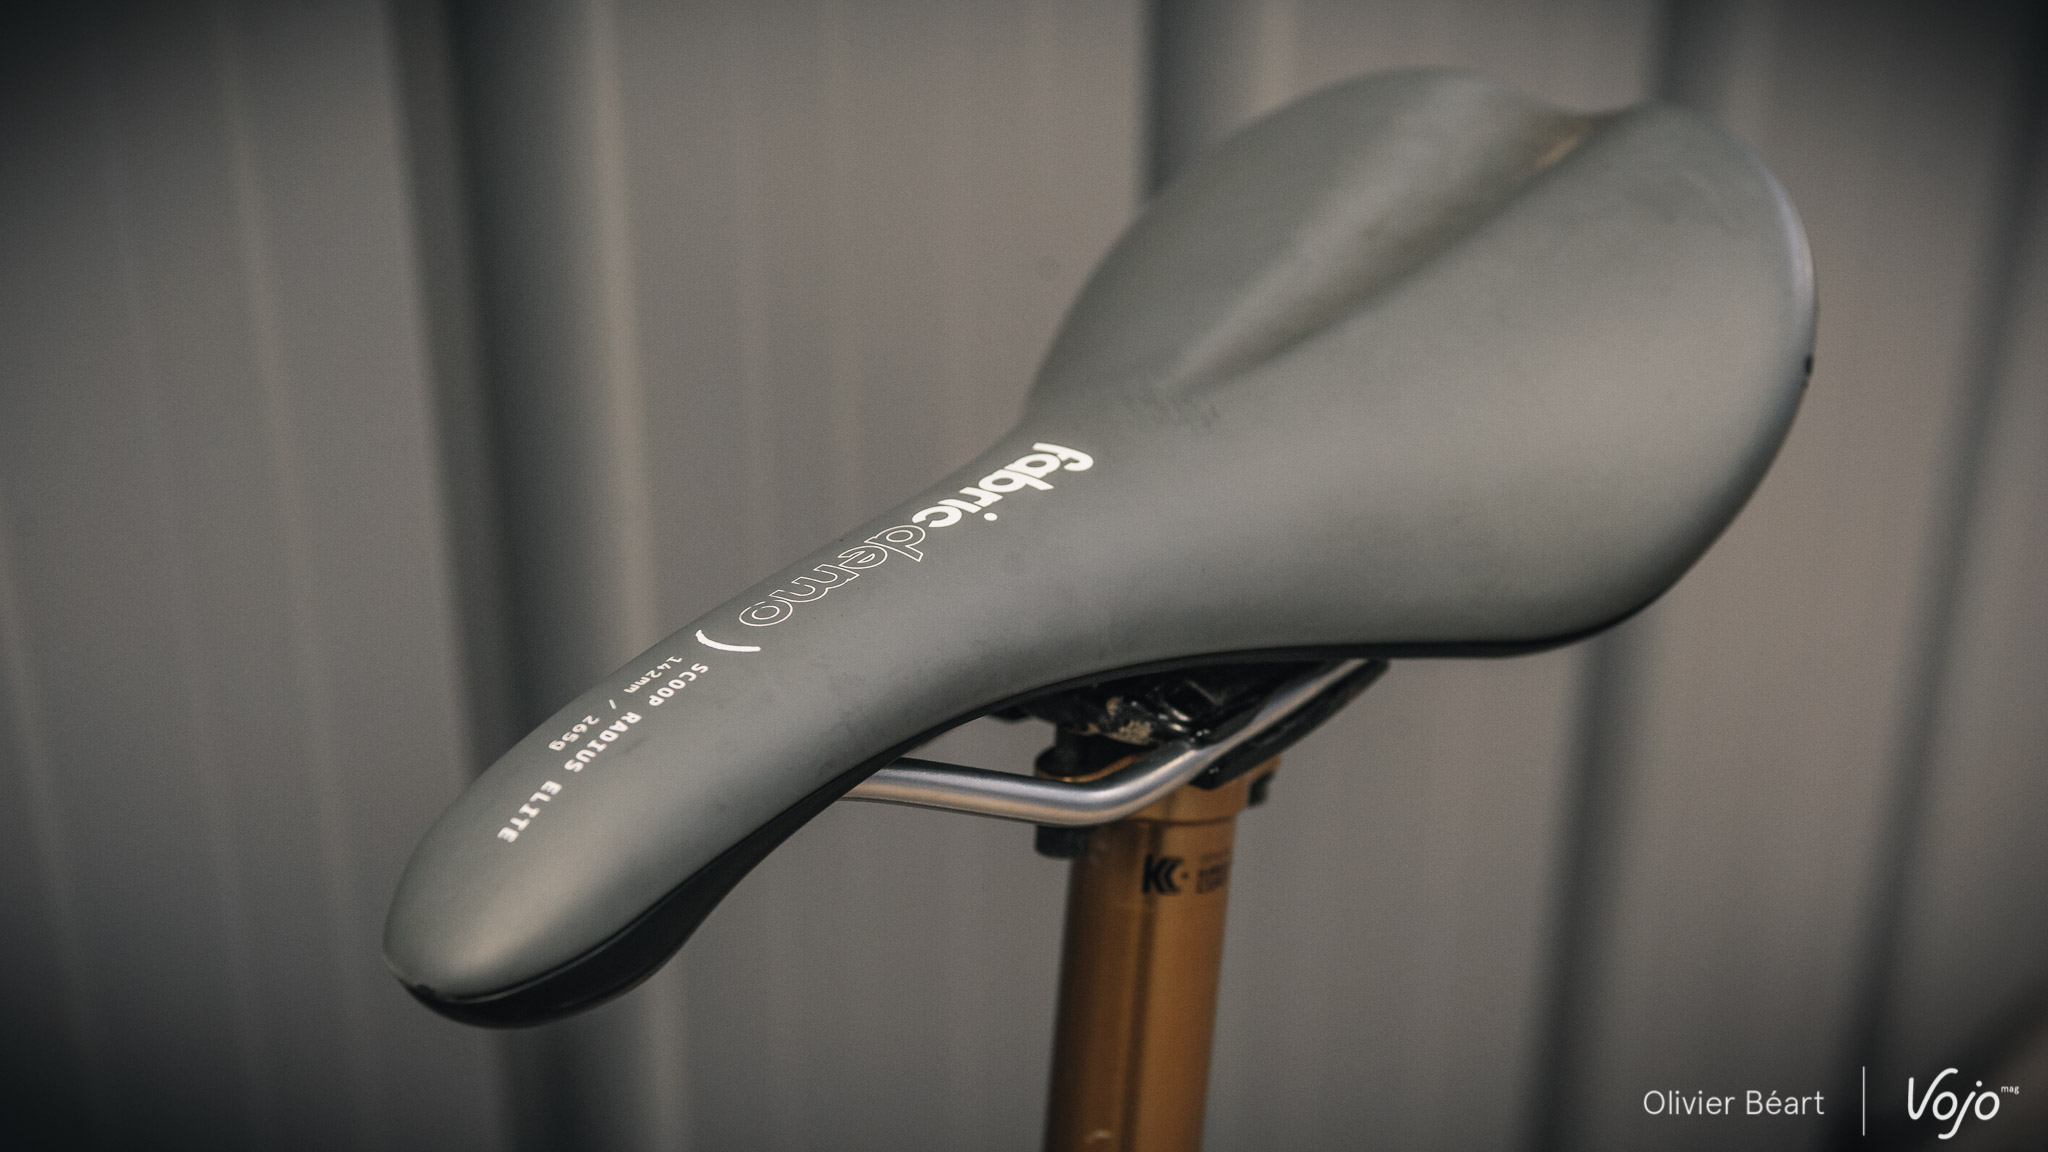 Selle_Fabric_Scoop_Shallow_Elite_Test_Copyright_OBeart_Vojomag-2